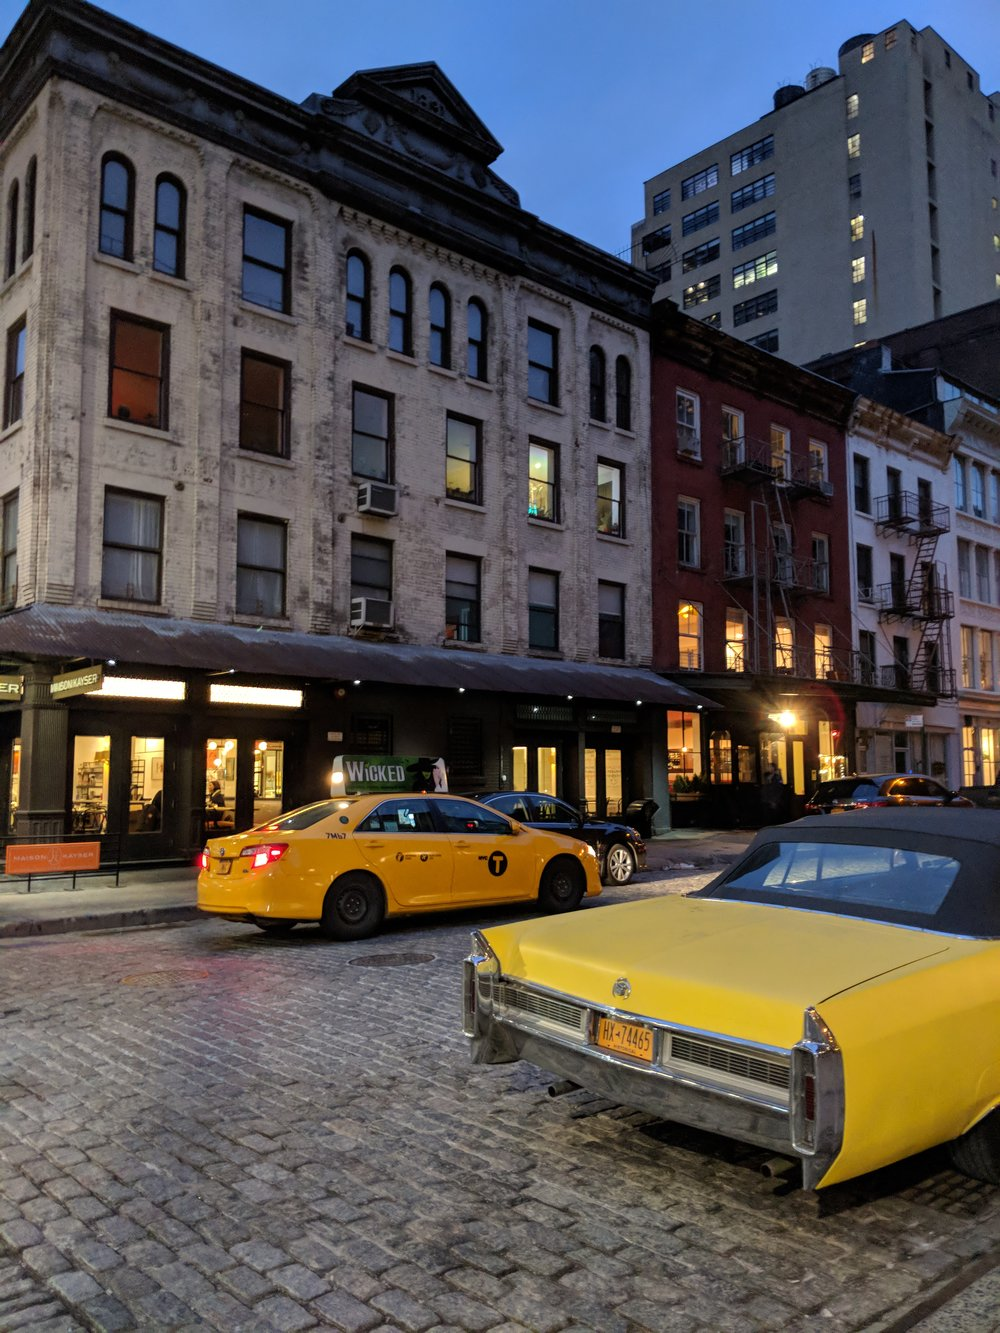 Taxi in Tribeca w a sweet lil Cadi on the sidewalk